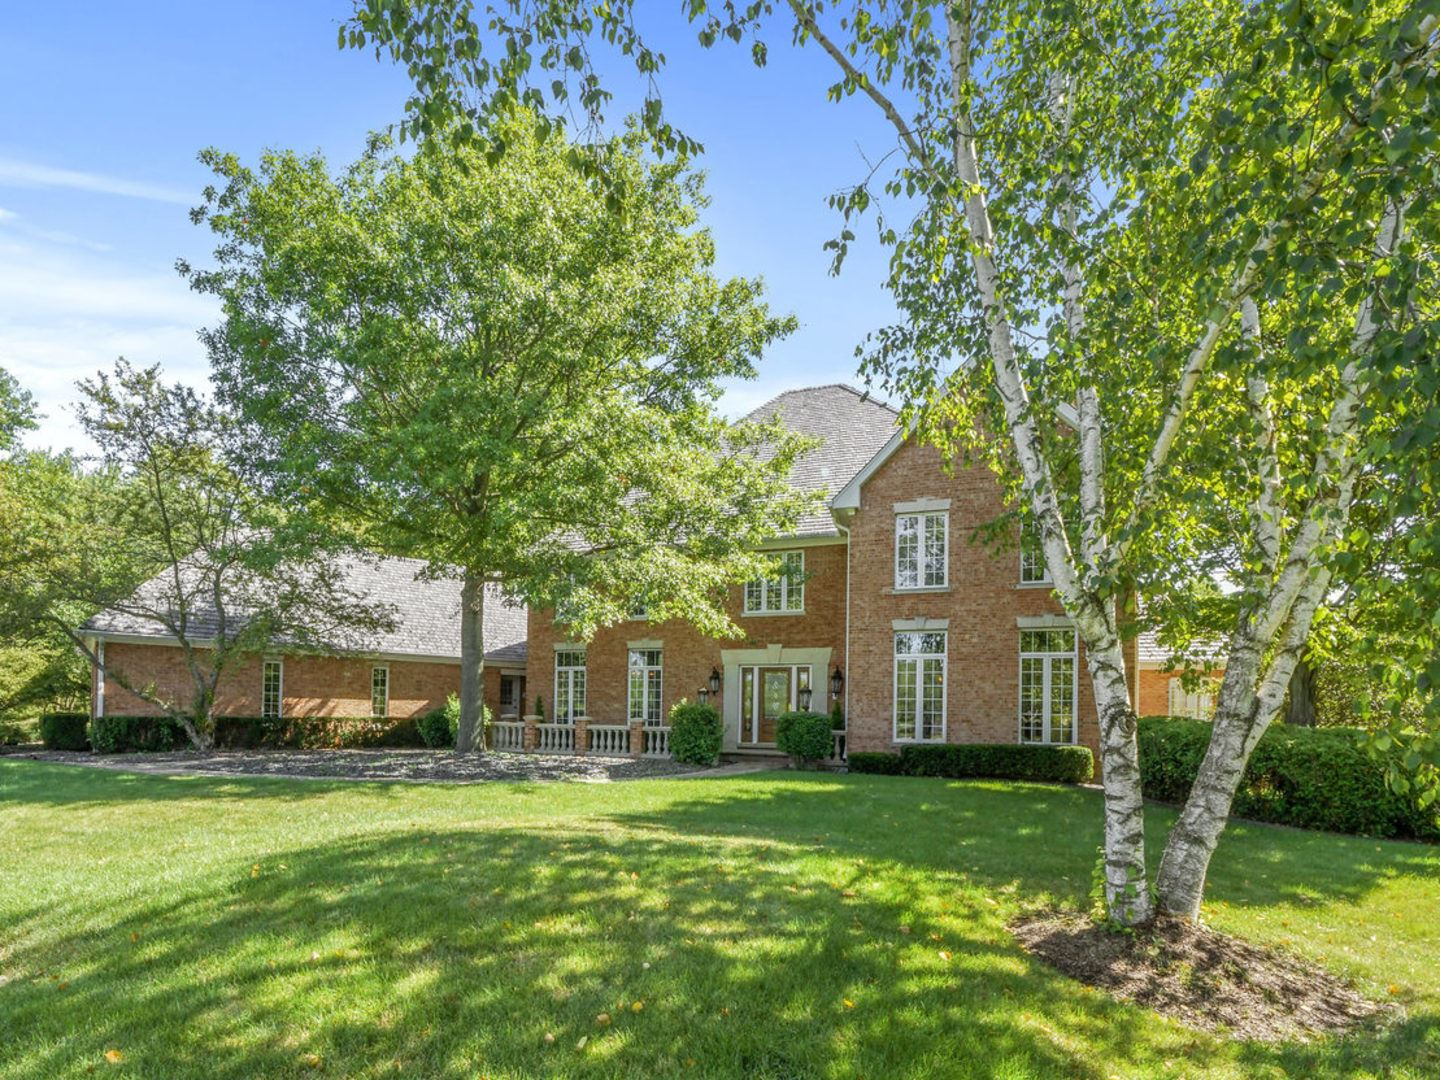 Photo for 851 Hunter Lane, Lake Forest, IL 60045 (MLS # 10847878)